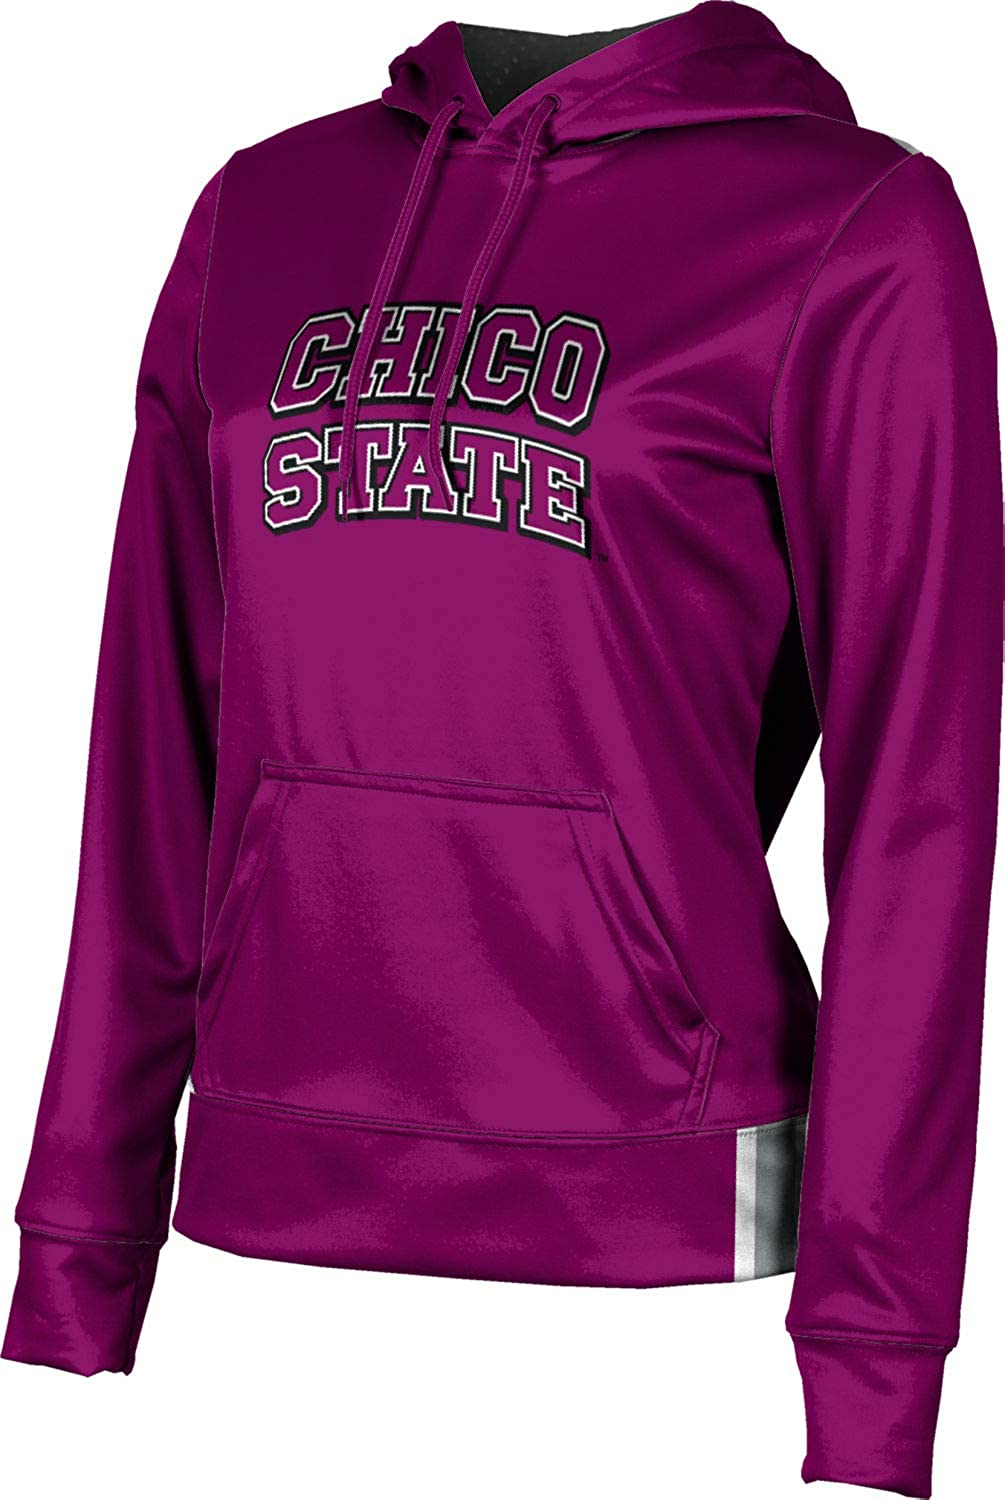 New popularity ProSphere California New color State University Hoo Women's Chico Pullover